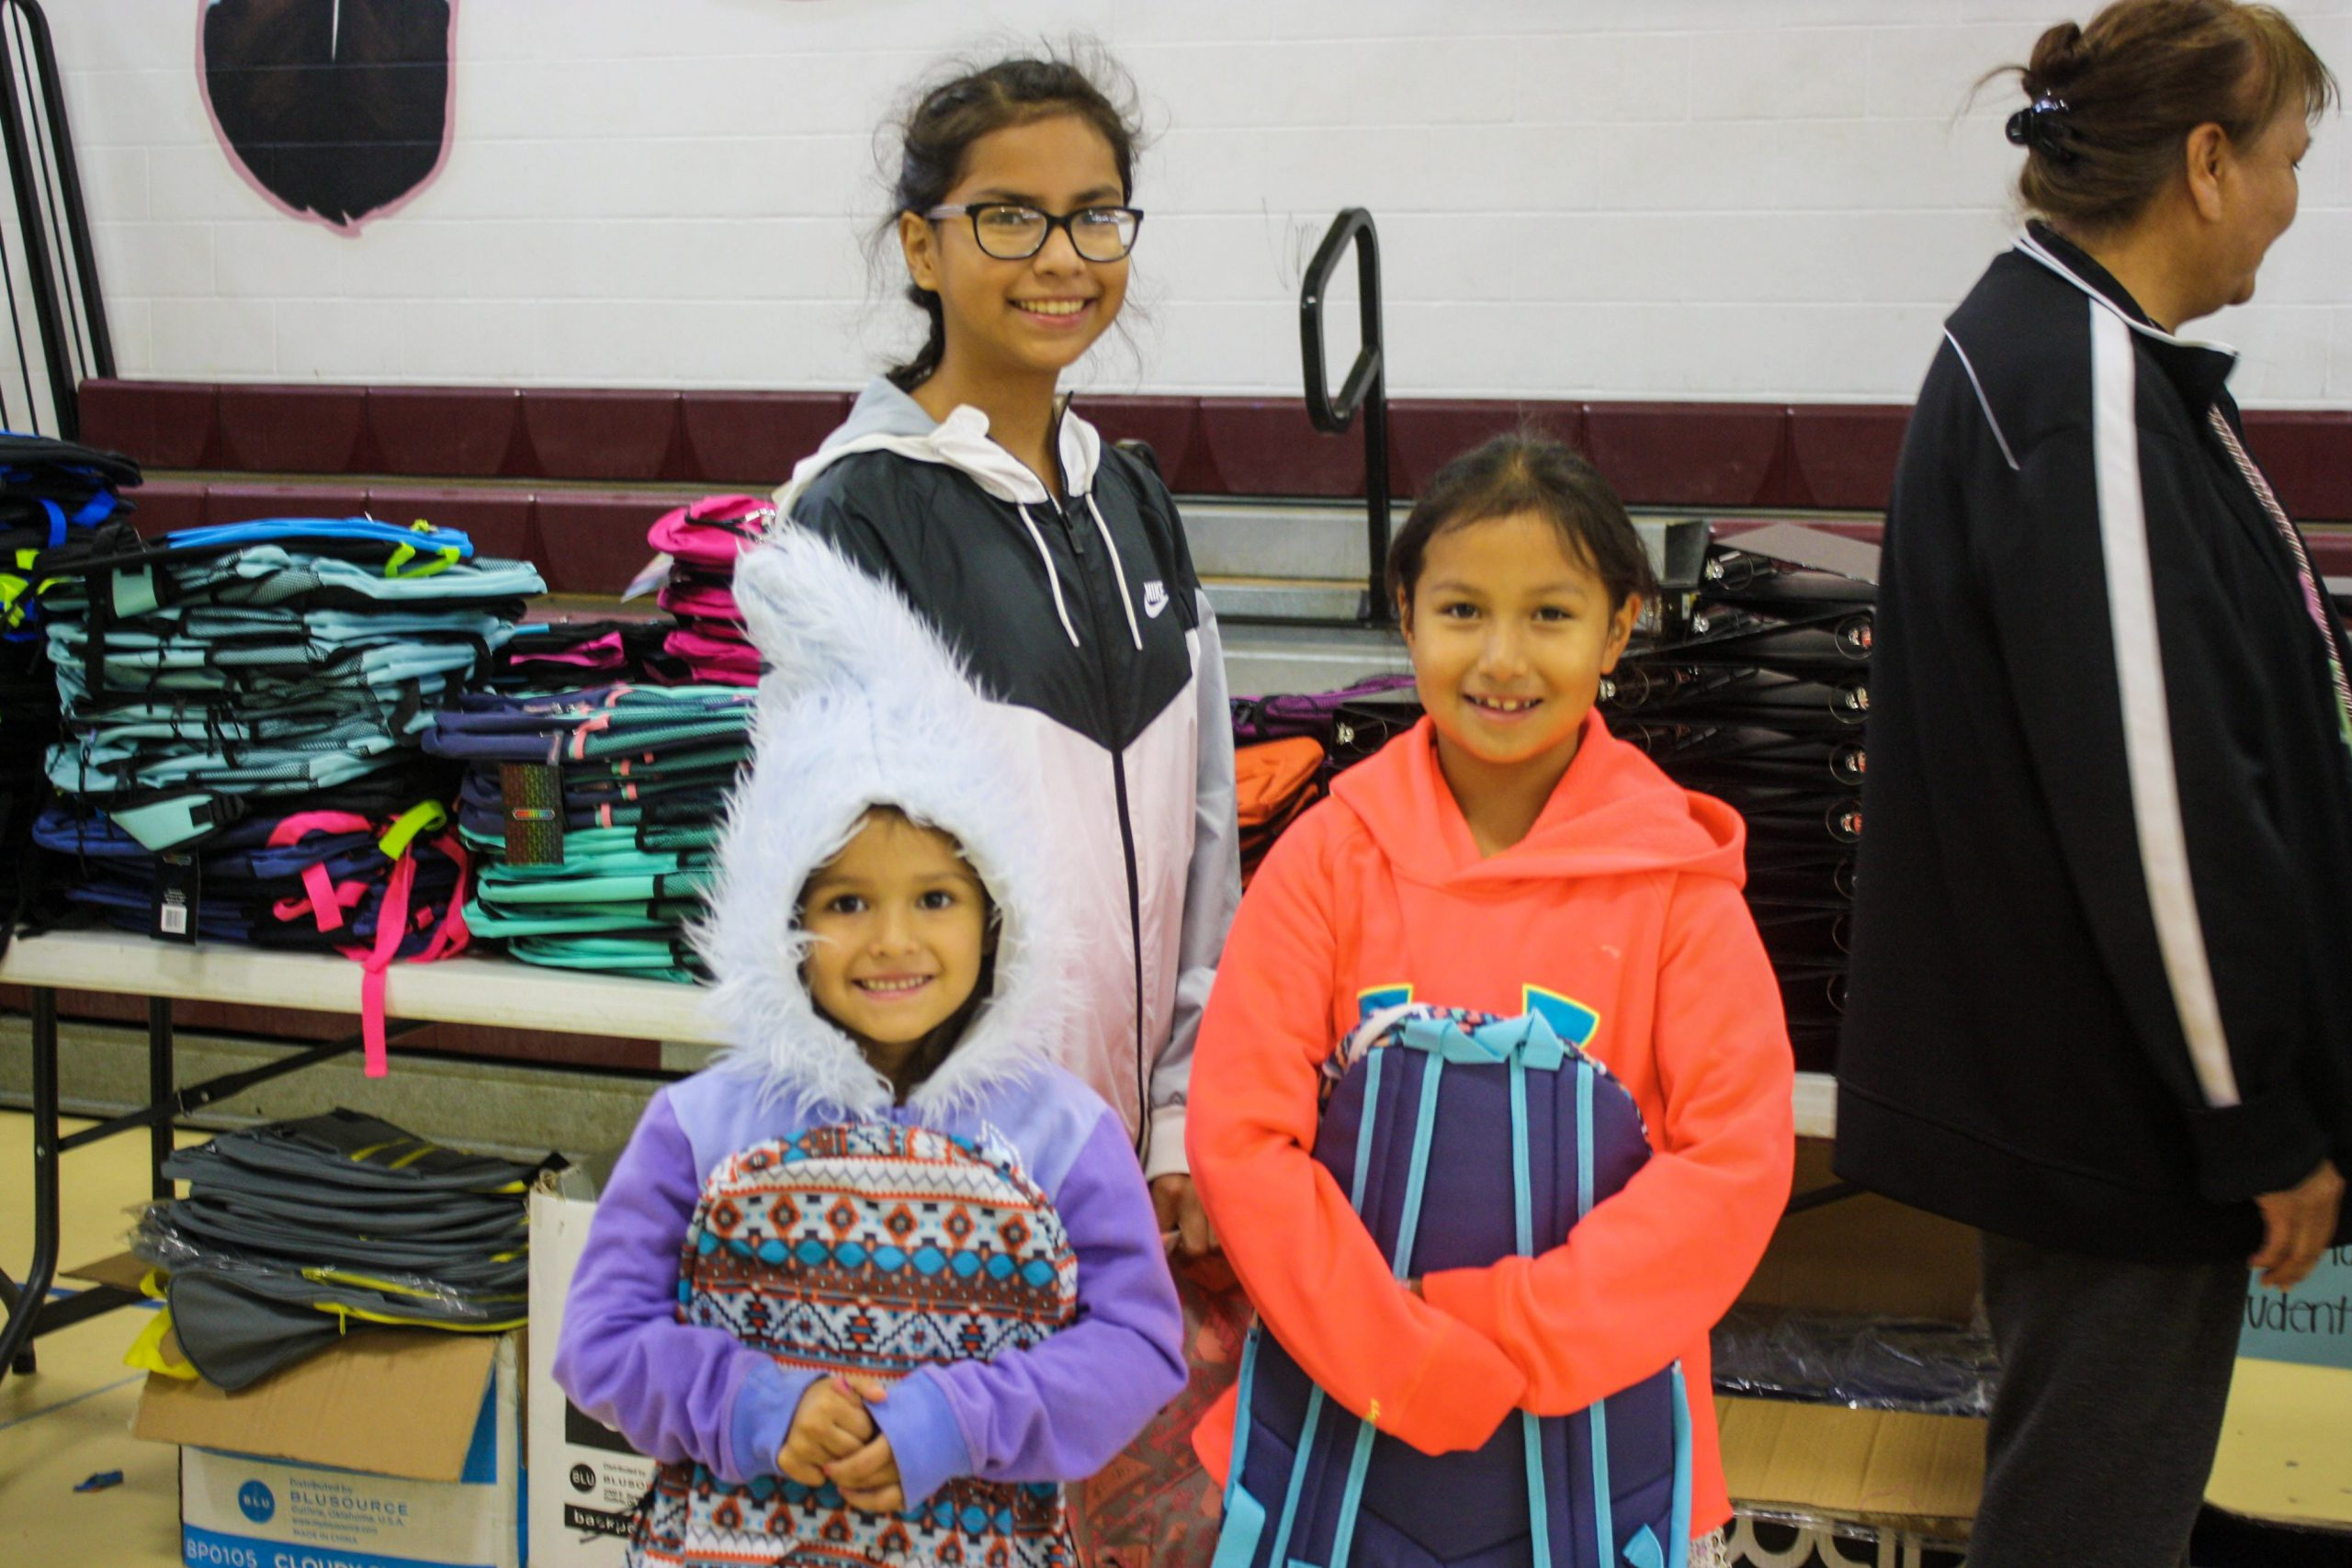 Cheyenne River Youth Project